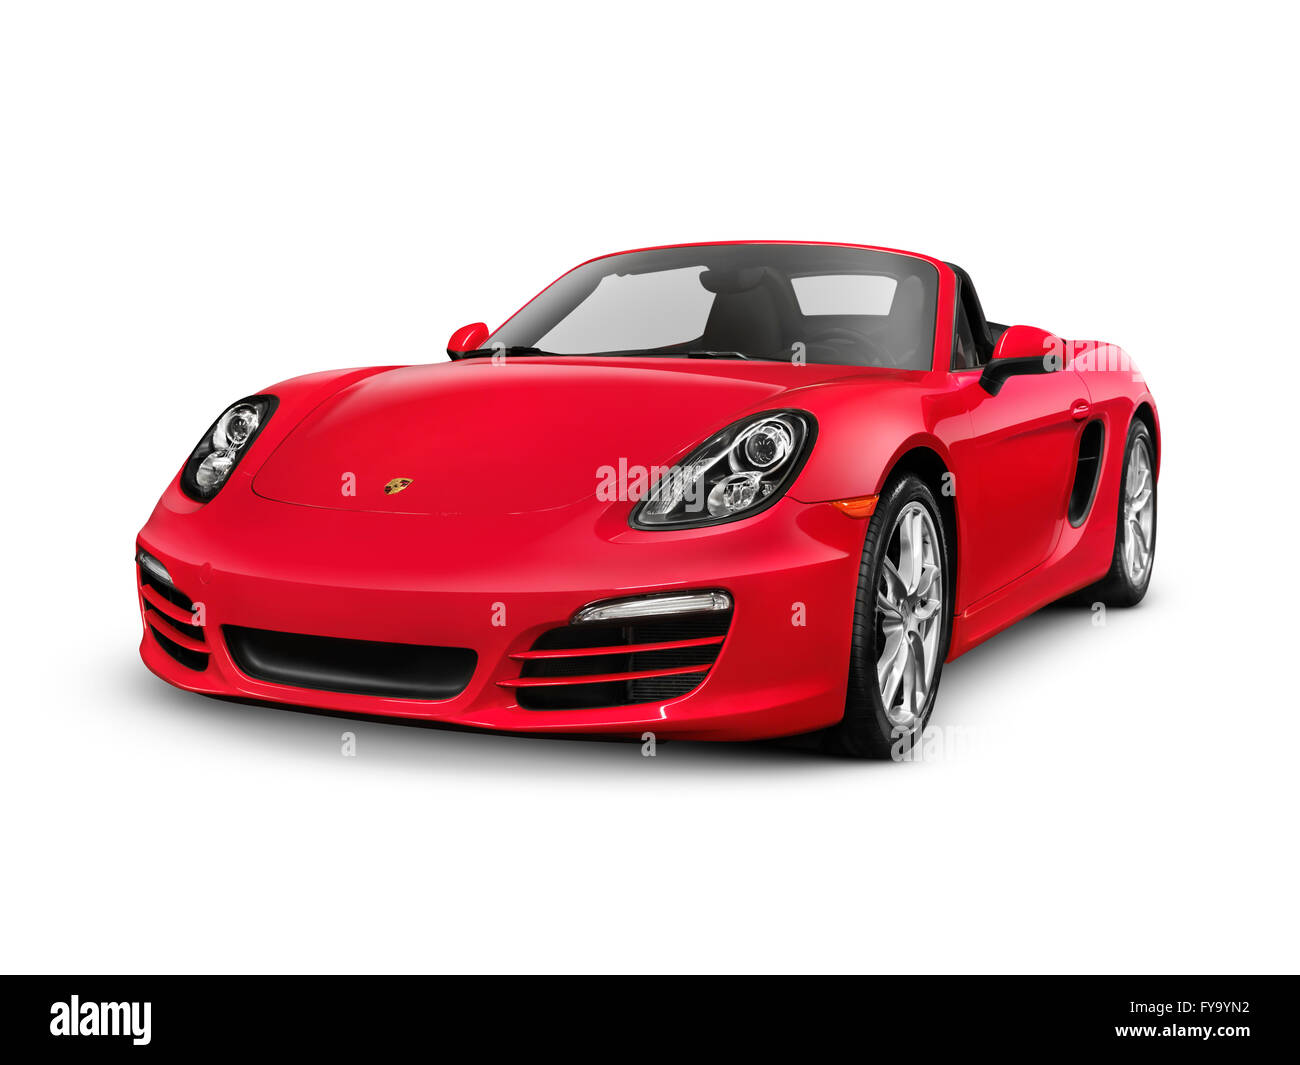 Red 2014 Porsche Boxster S Convertible luxury sports car - Stock Image